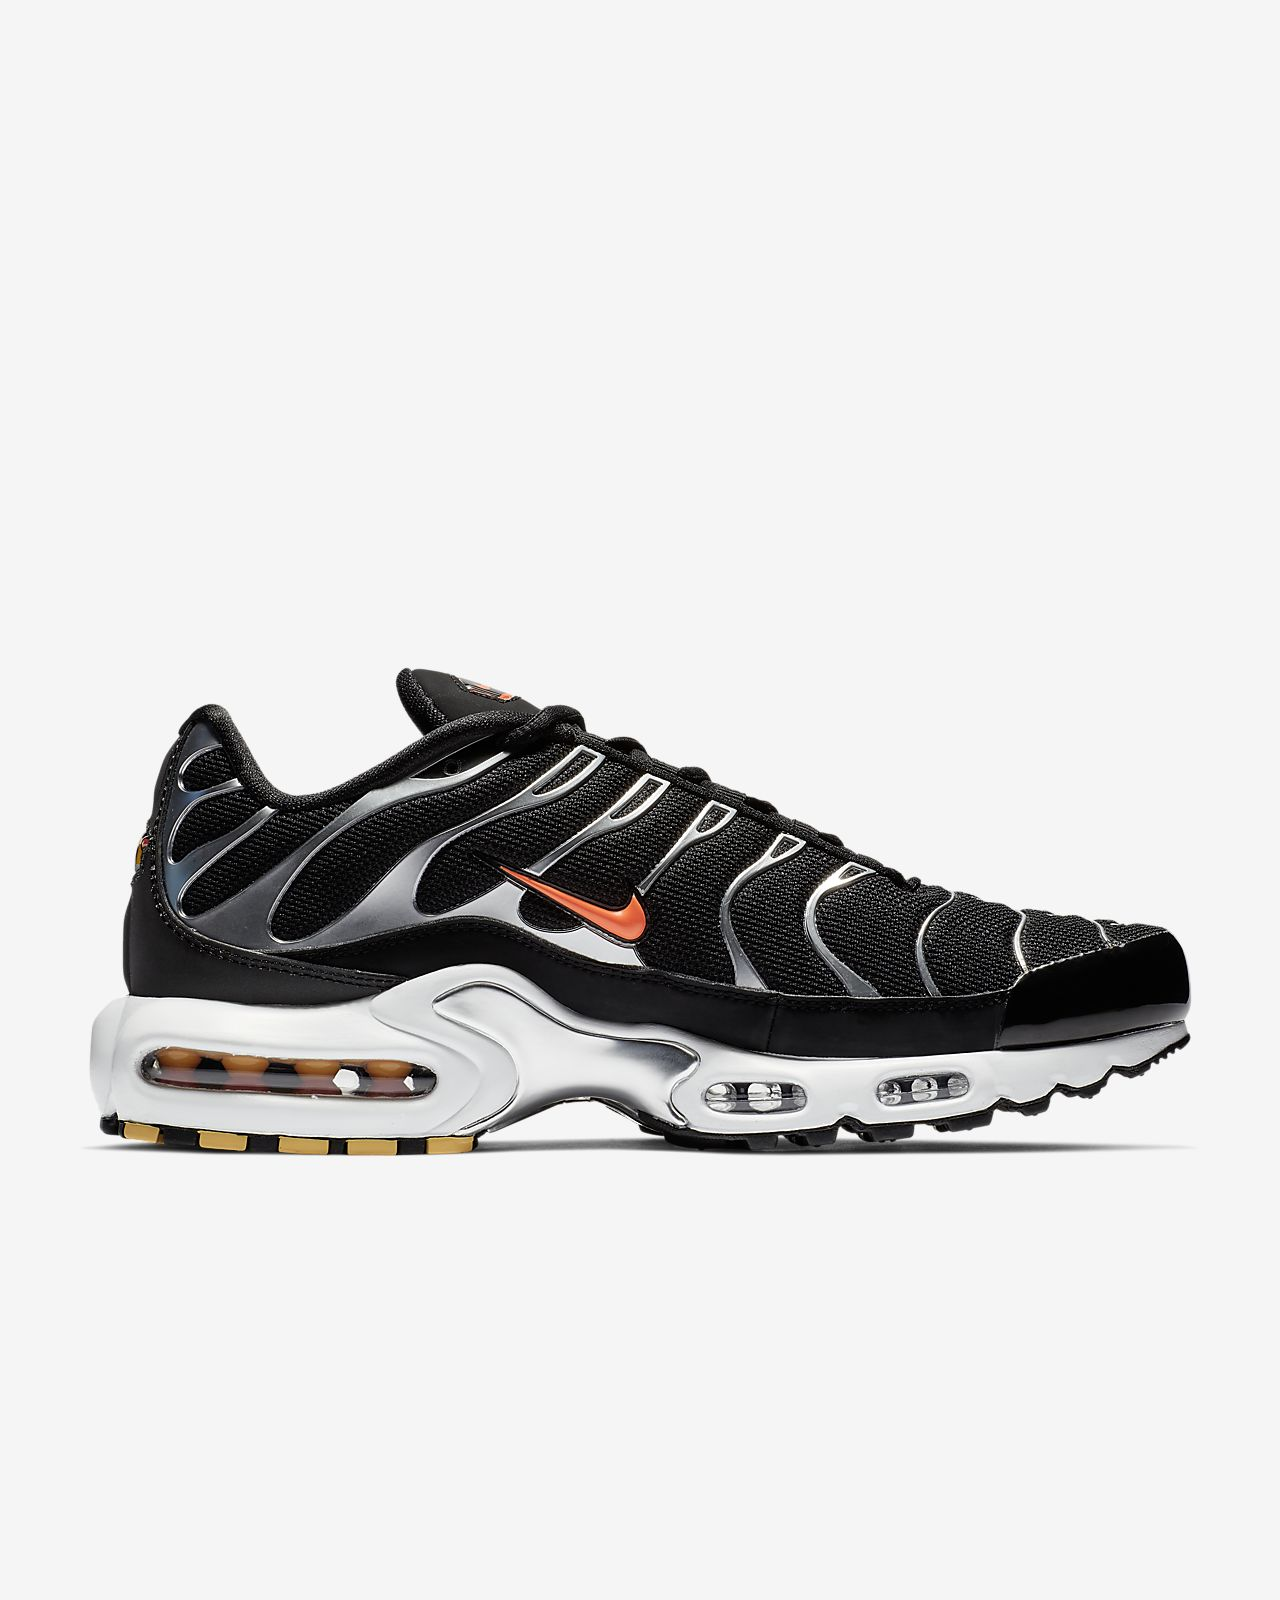 huge selection of a3df3 07a45 ... Chaussure Nike Air Max Plus TN SE pour Homme